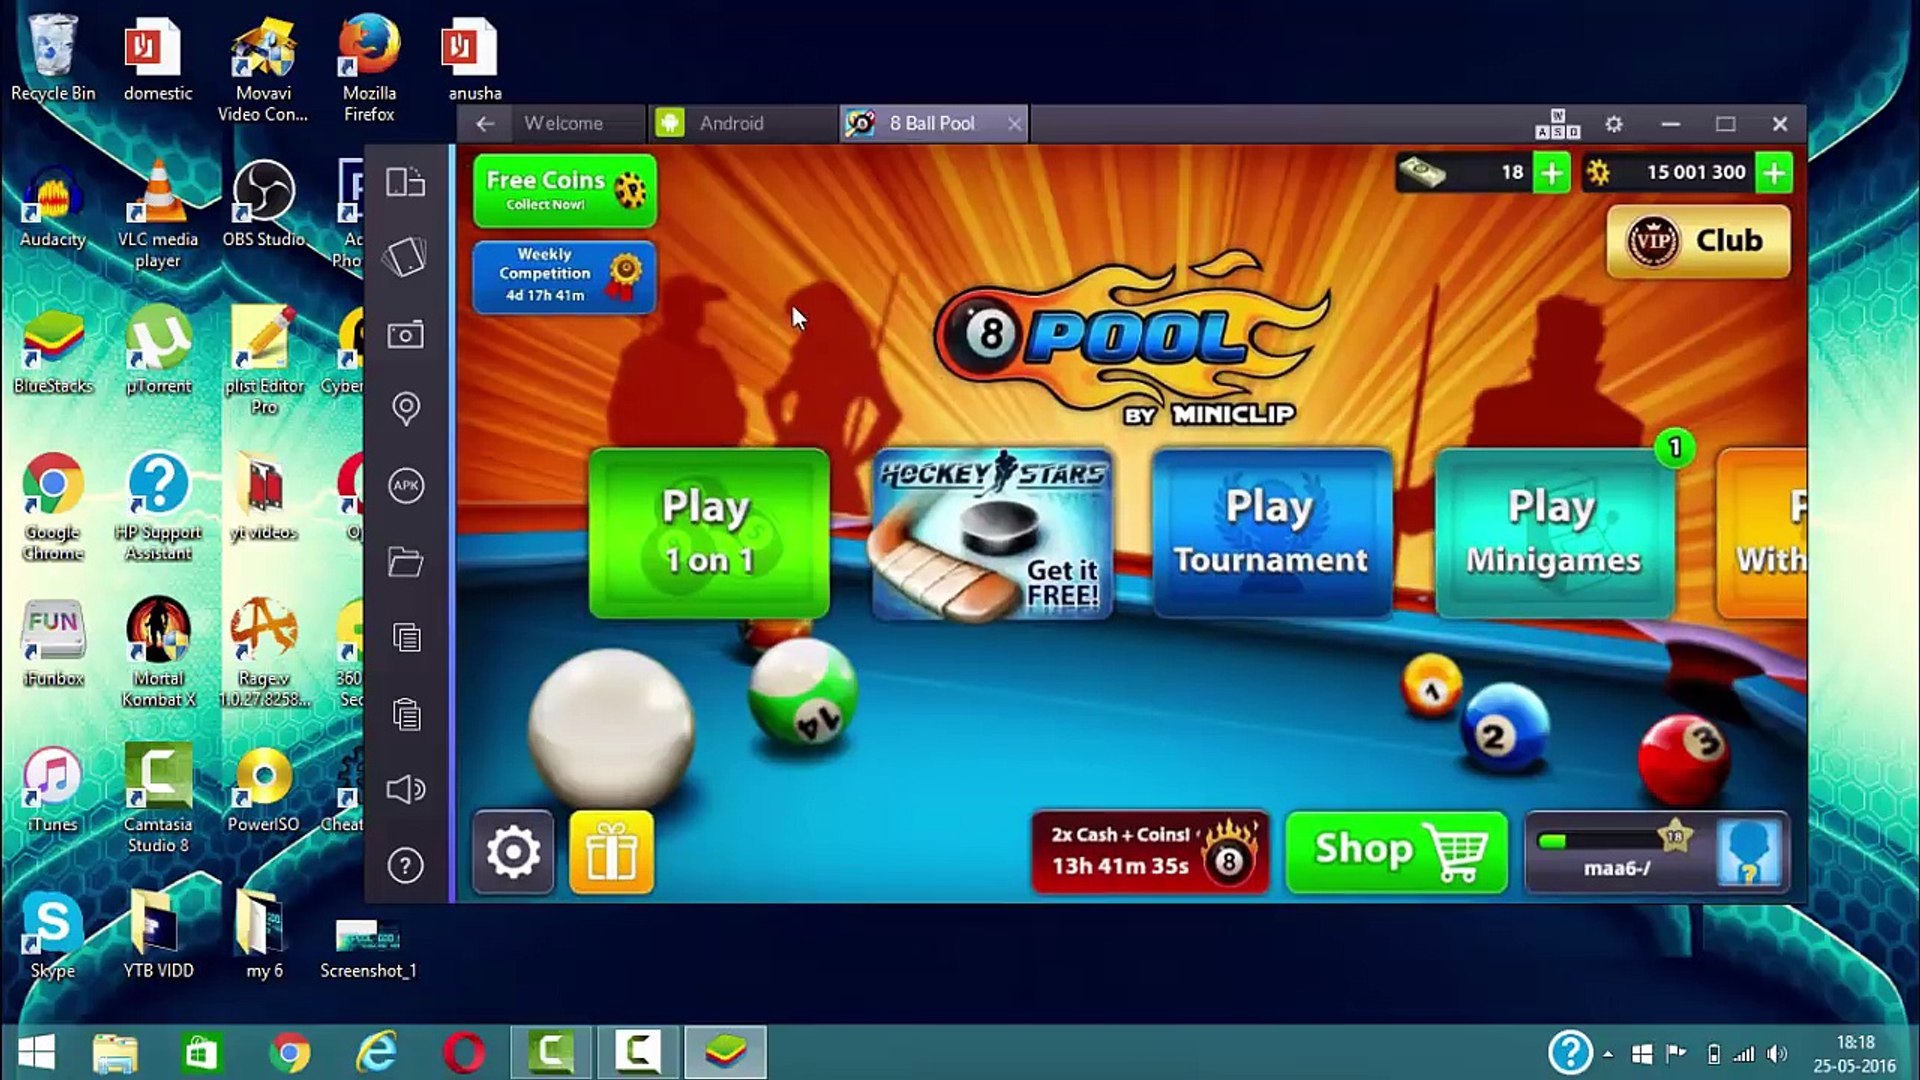 8 Ball Pool Cheats Android 2018 8 ball pool cheat | cue for completely free